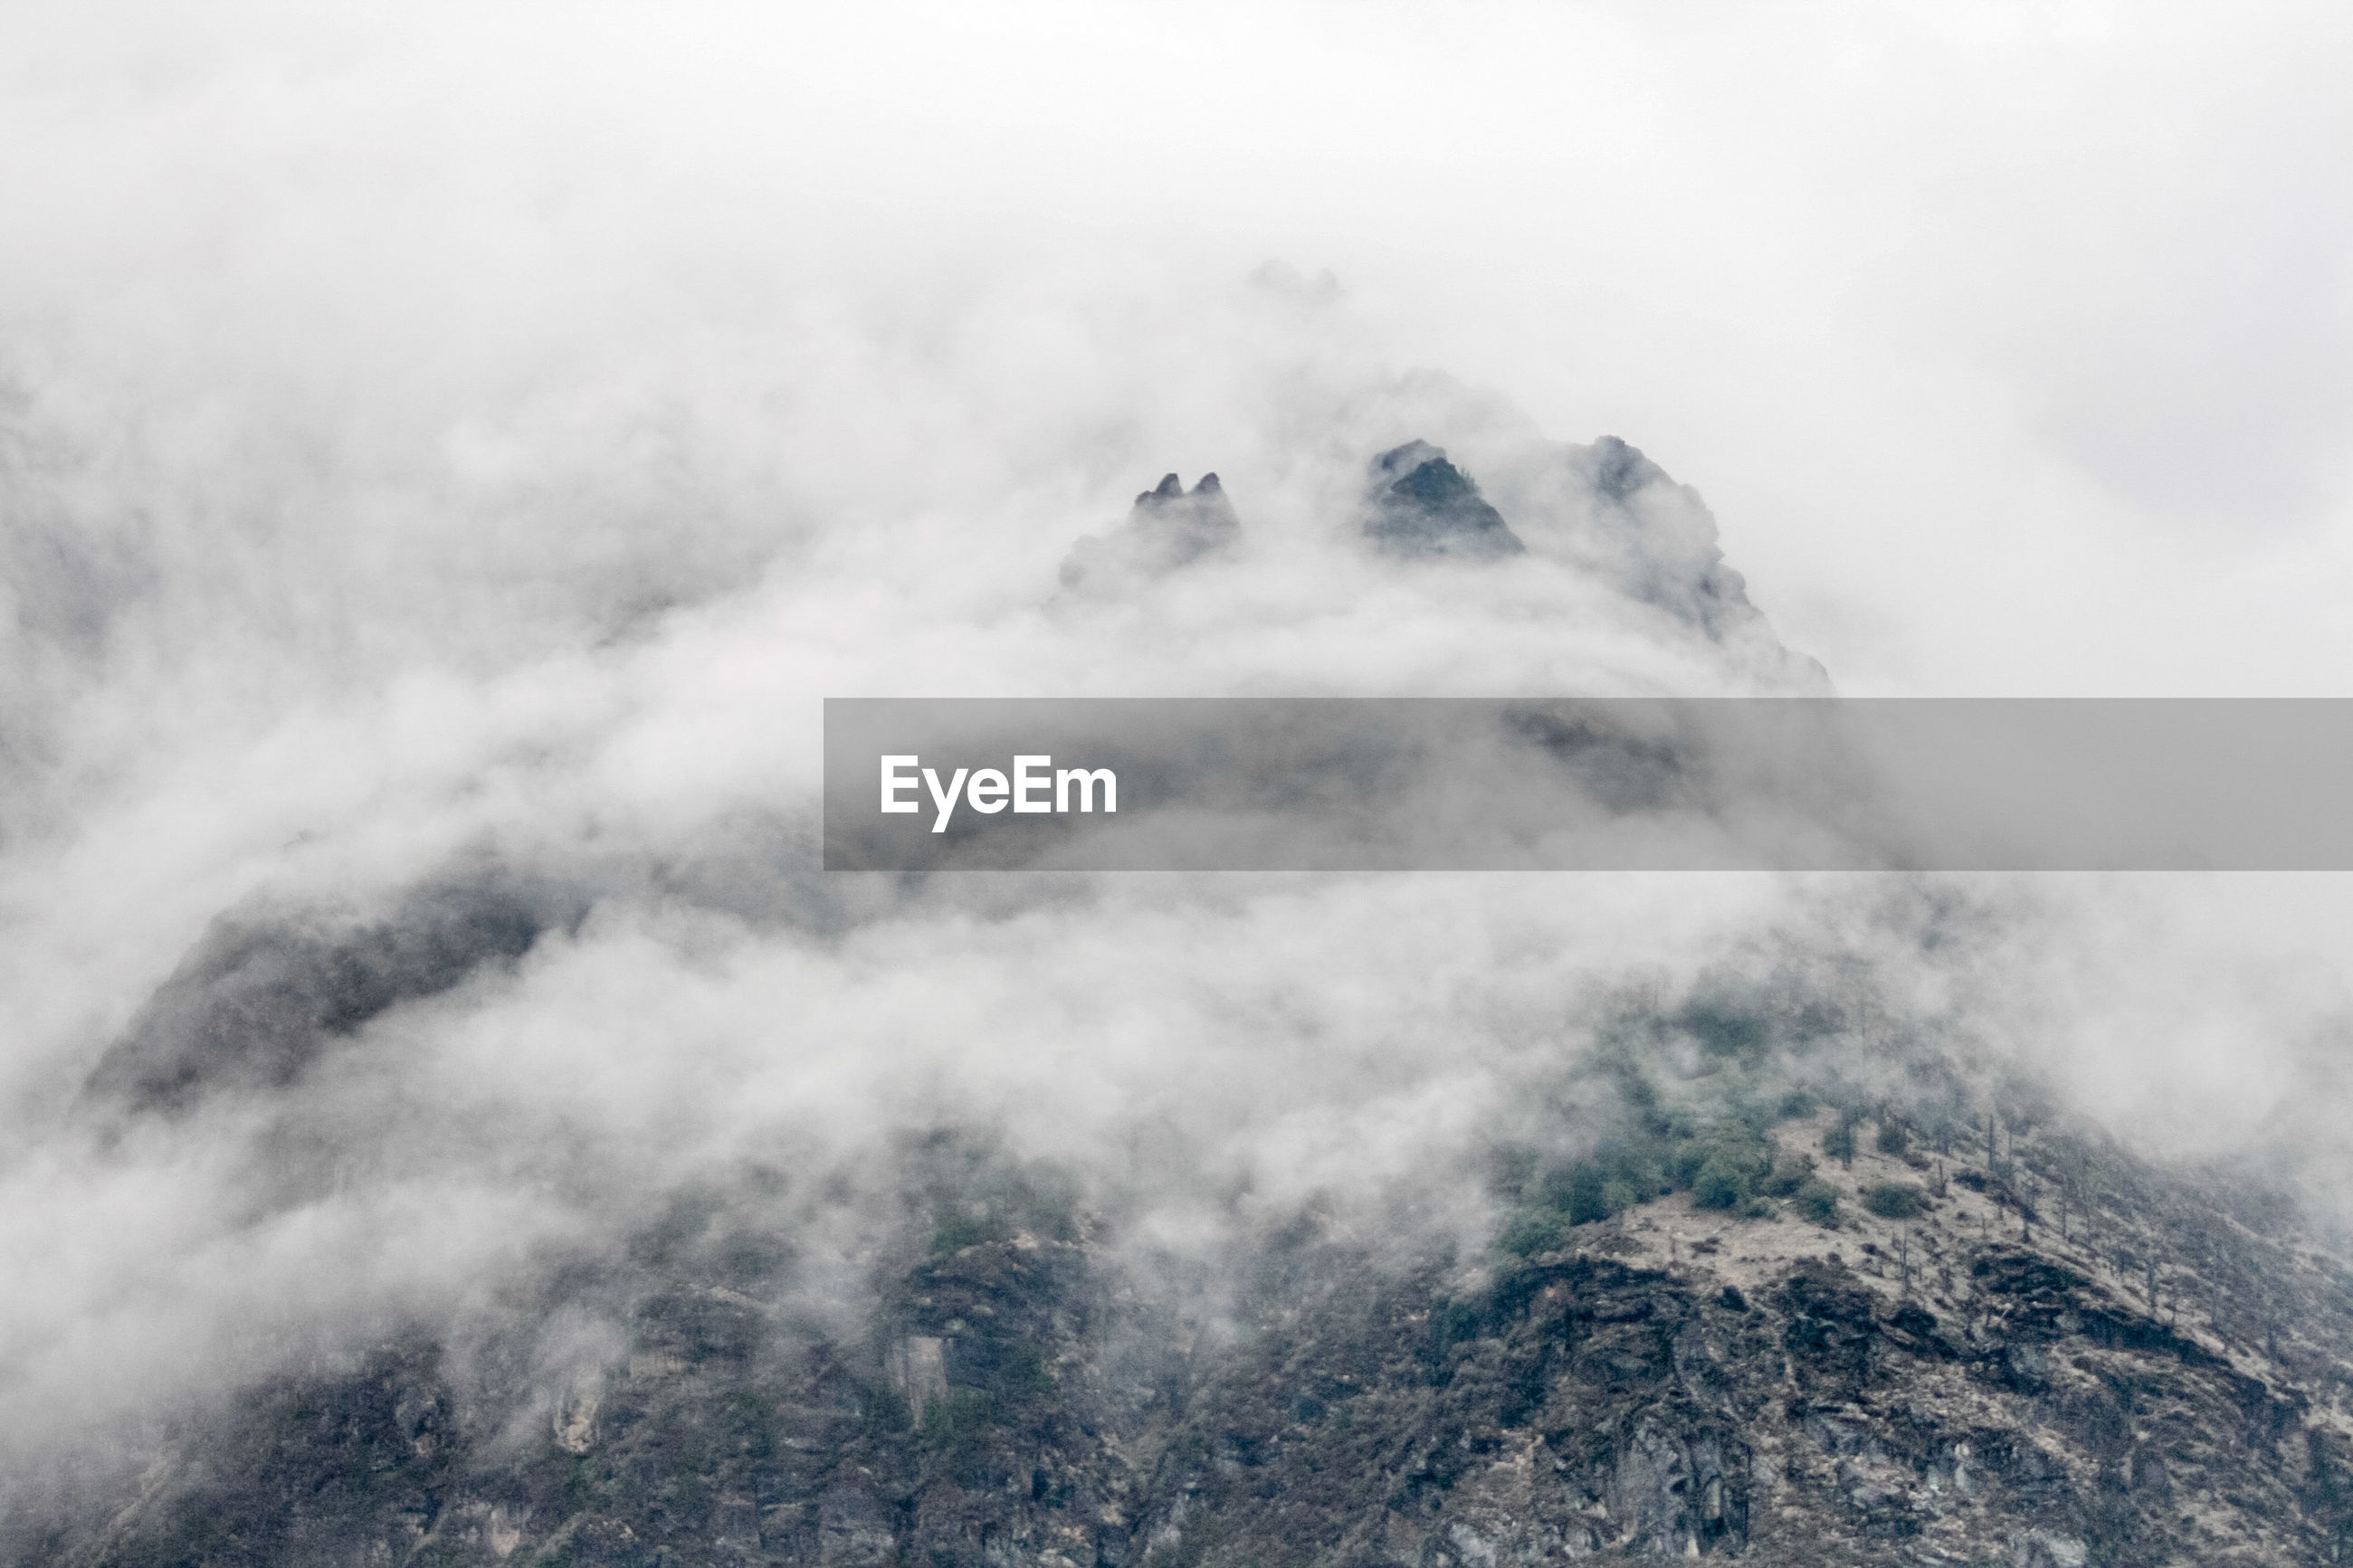 Mountain against sky during foggy weather